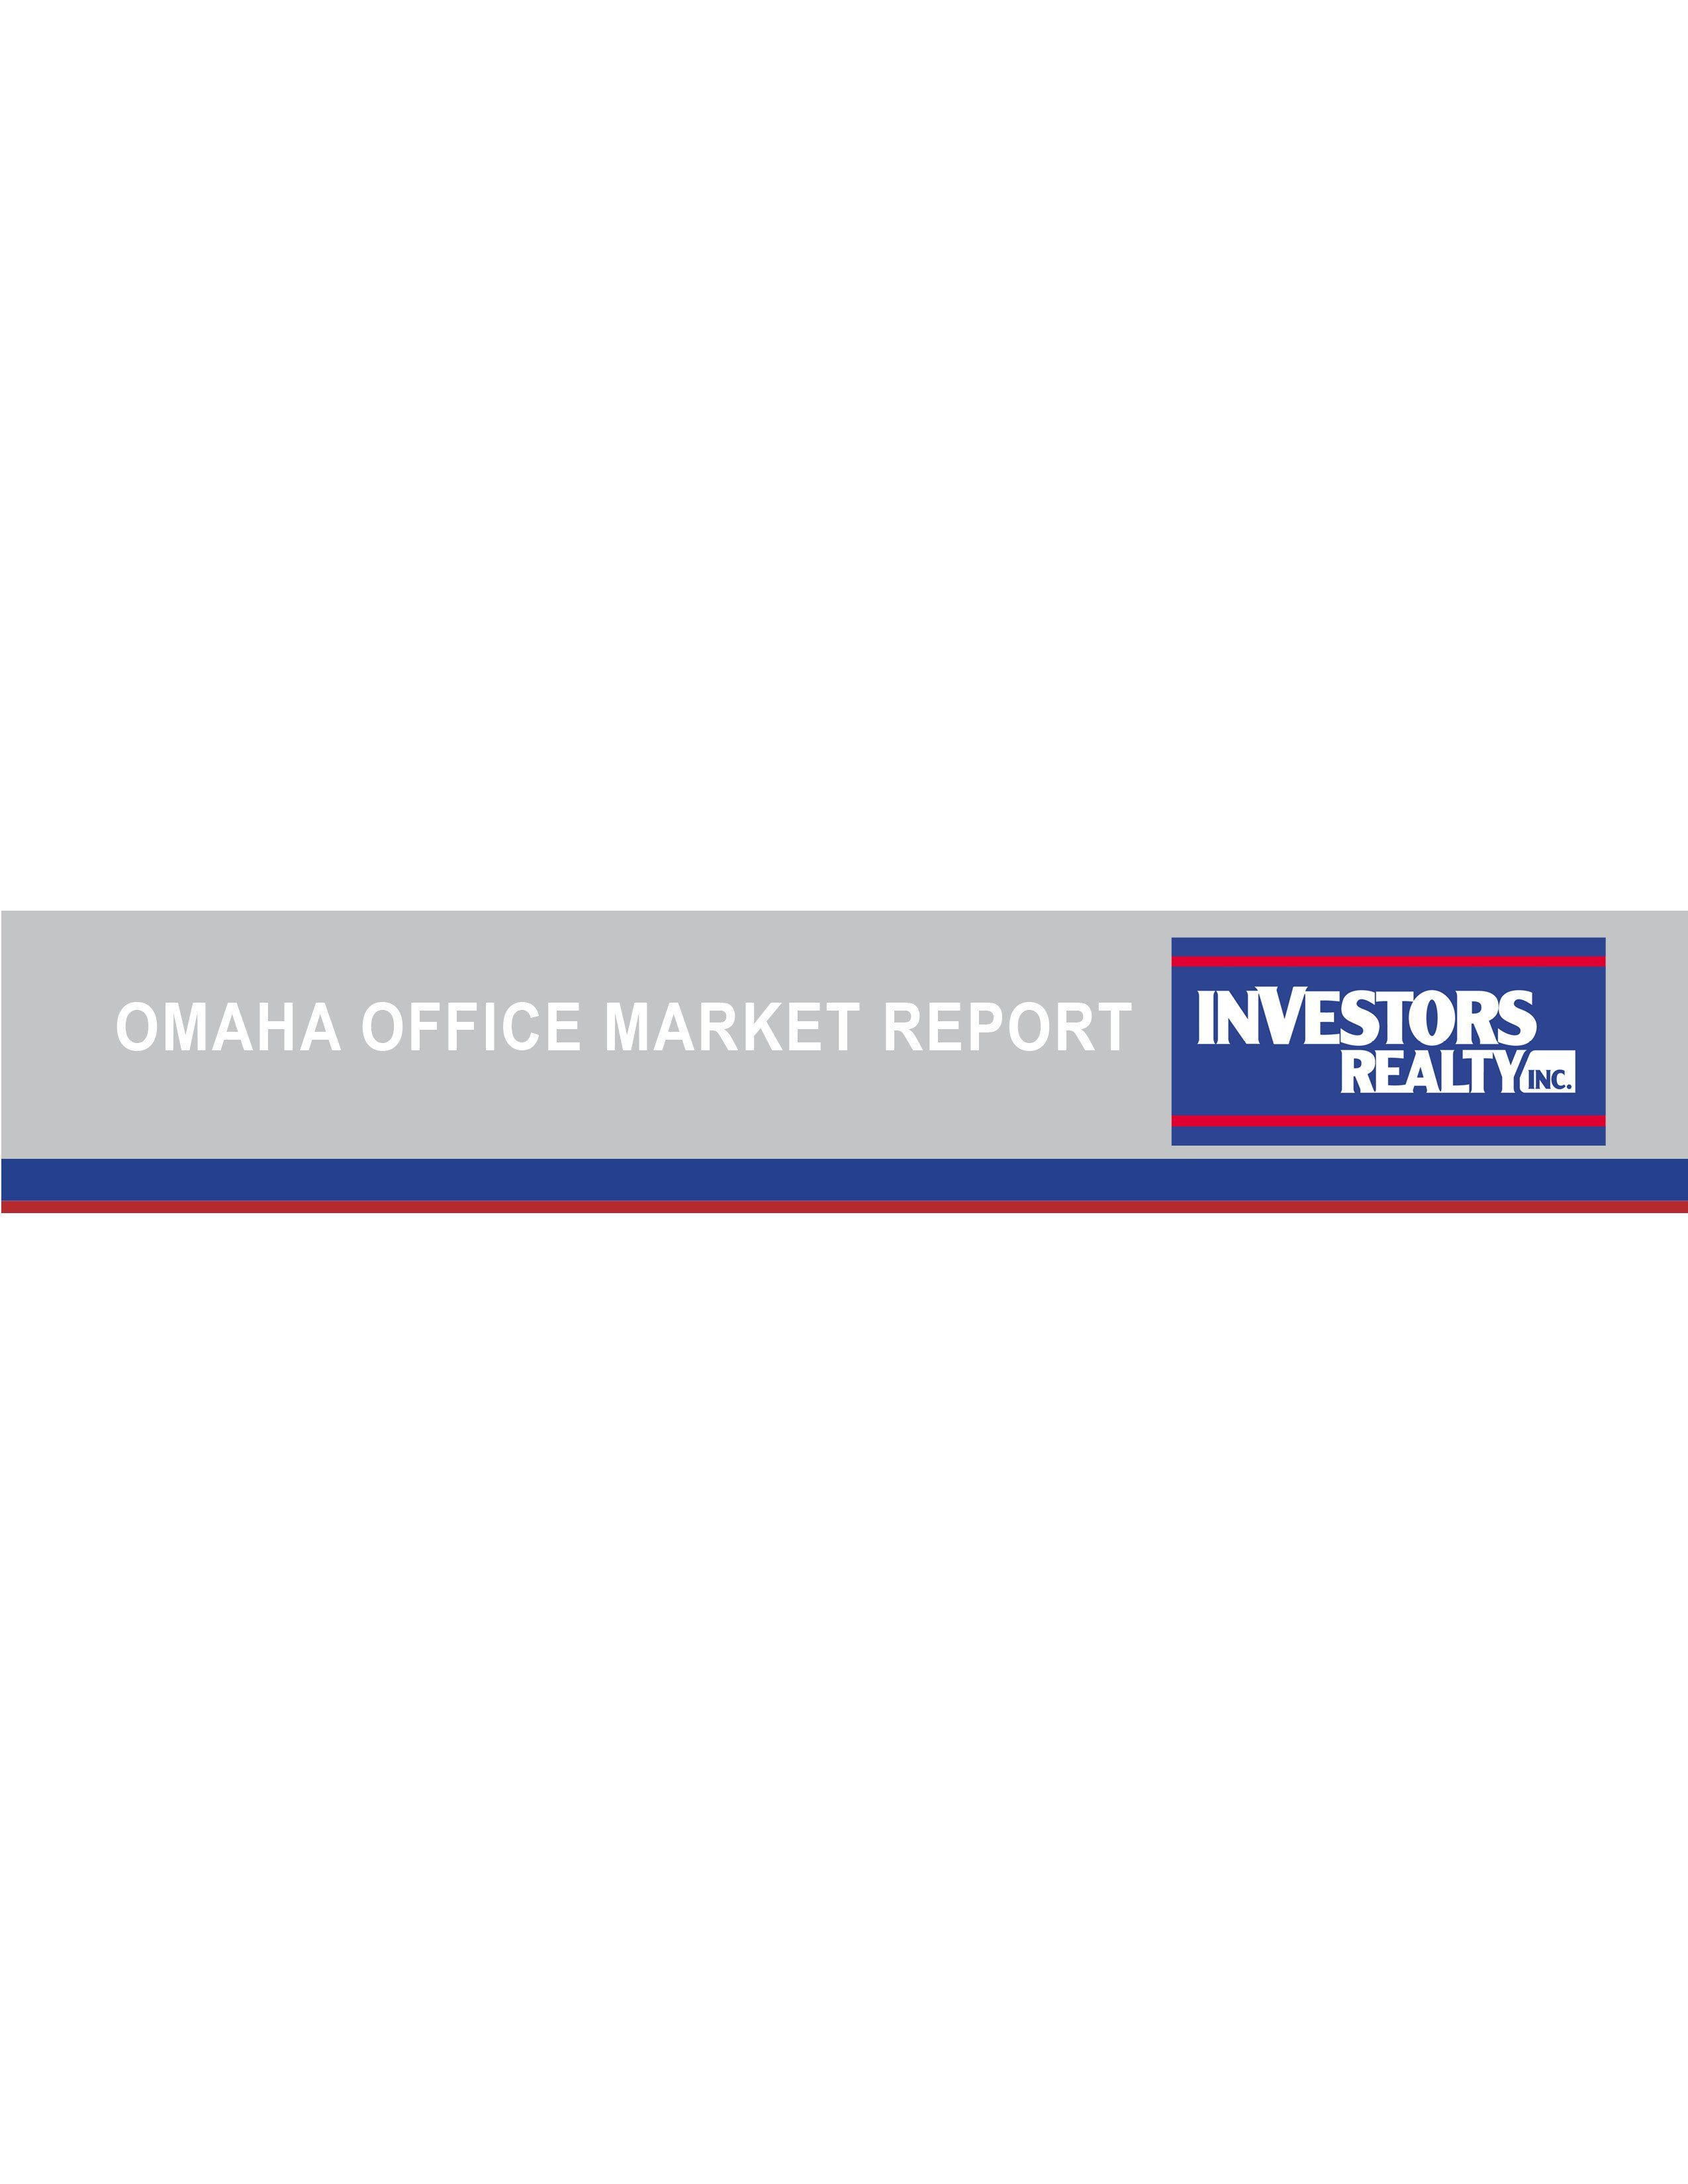 Investors Realty Winter 2014 Office Market Report